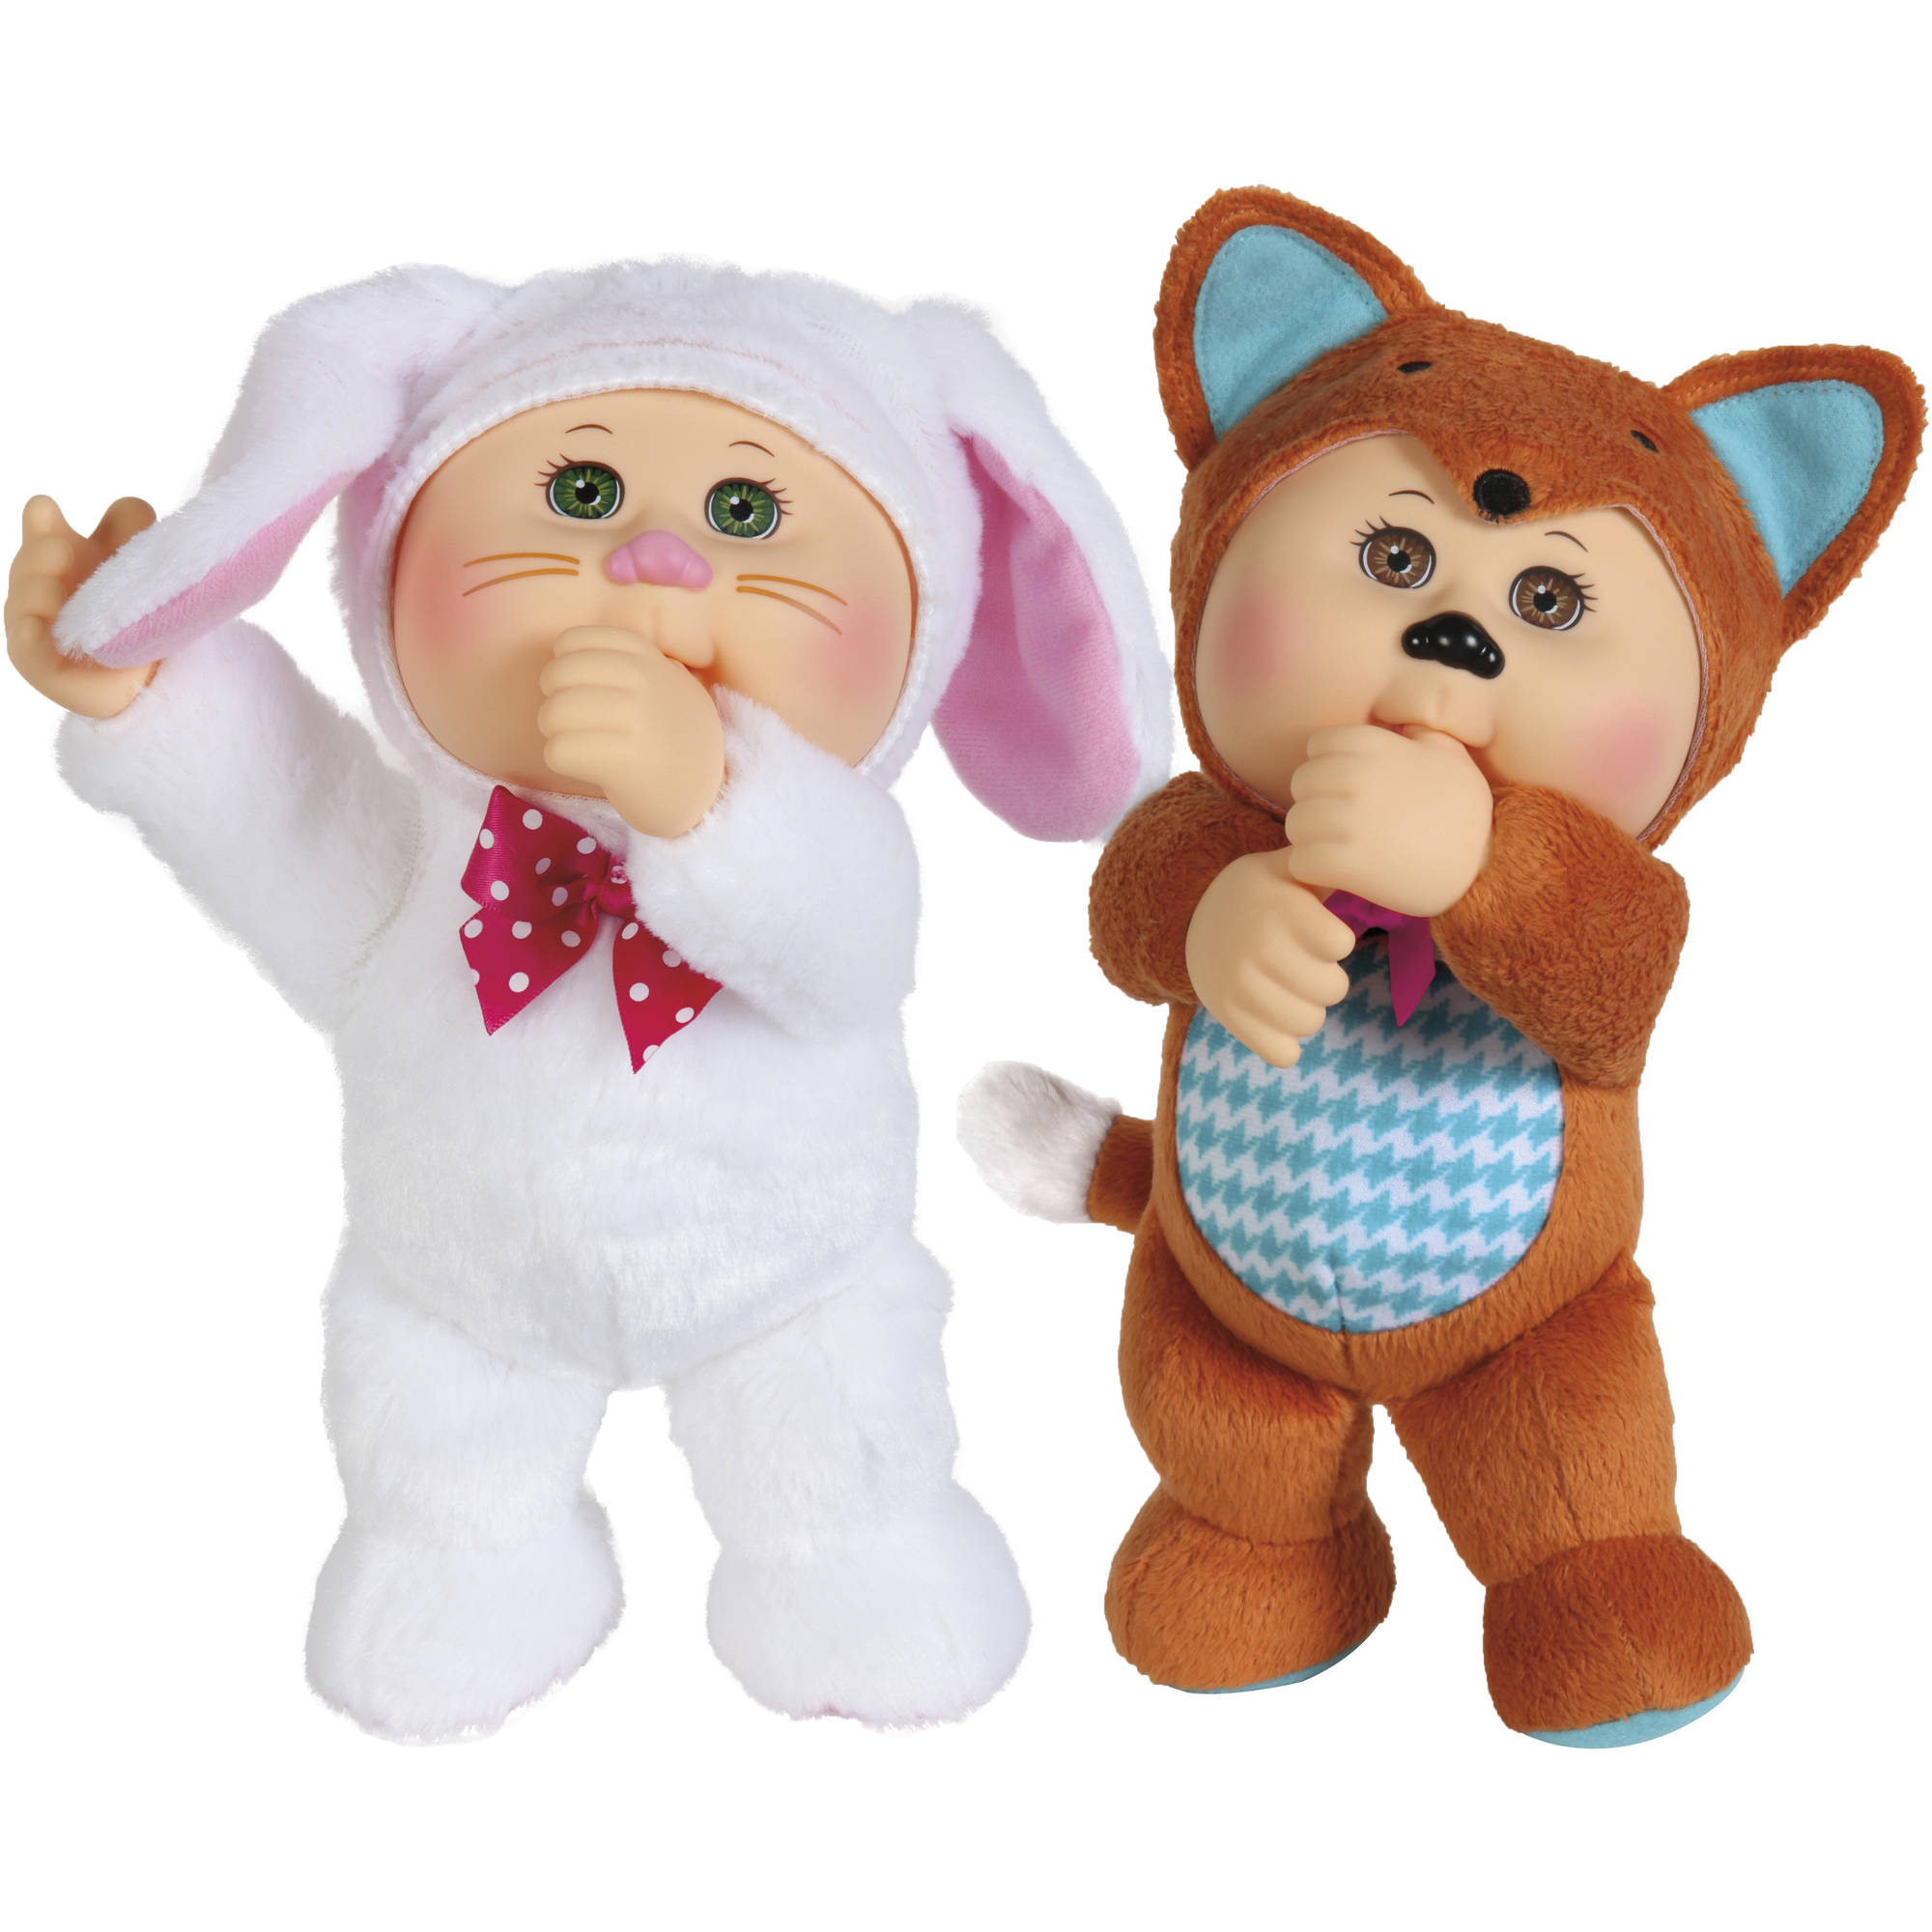 "Cabbage Patch Kids 9"" Forest Friend Cuties, 2pk"